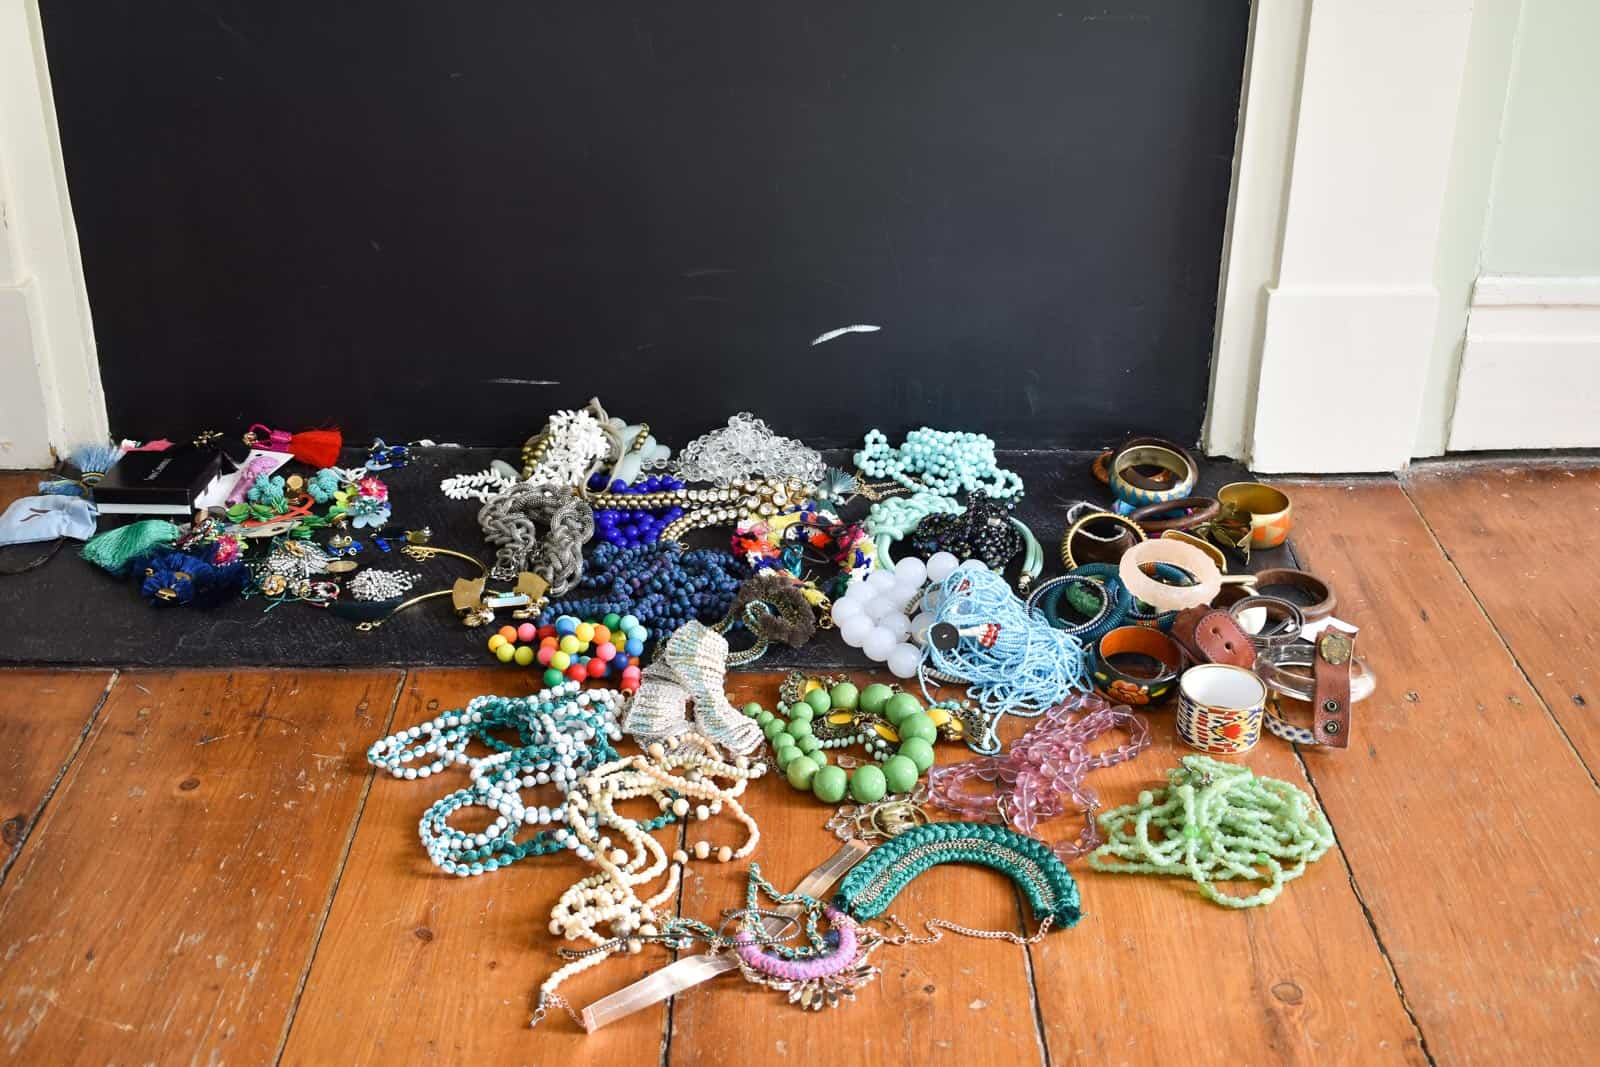 clear out all the jewelry